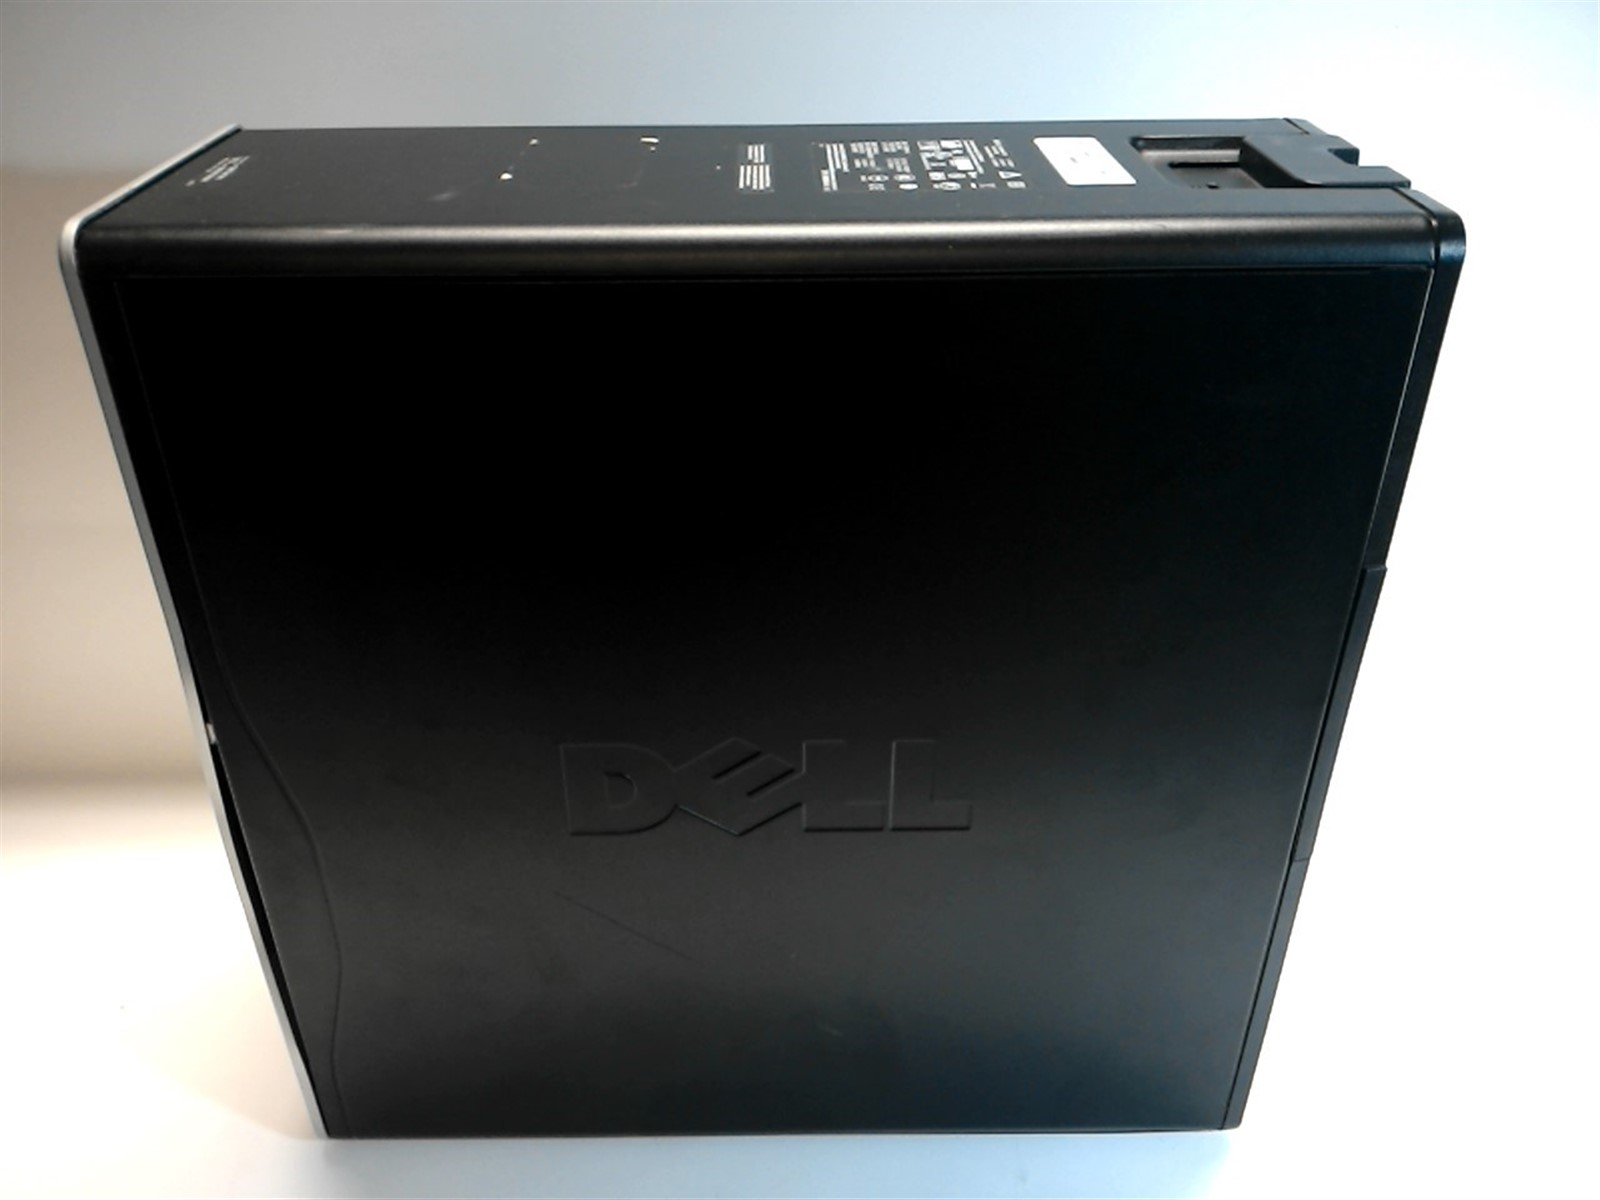 Dell precision t3500 expansion slots : Poker red dead